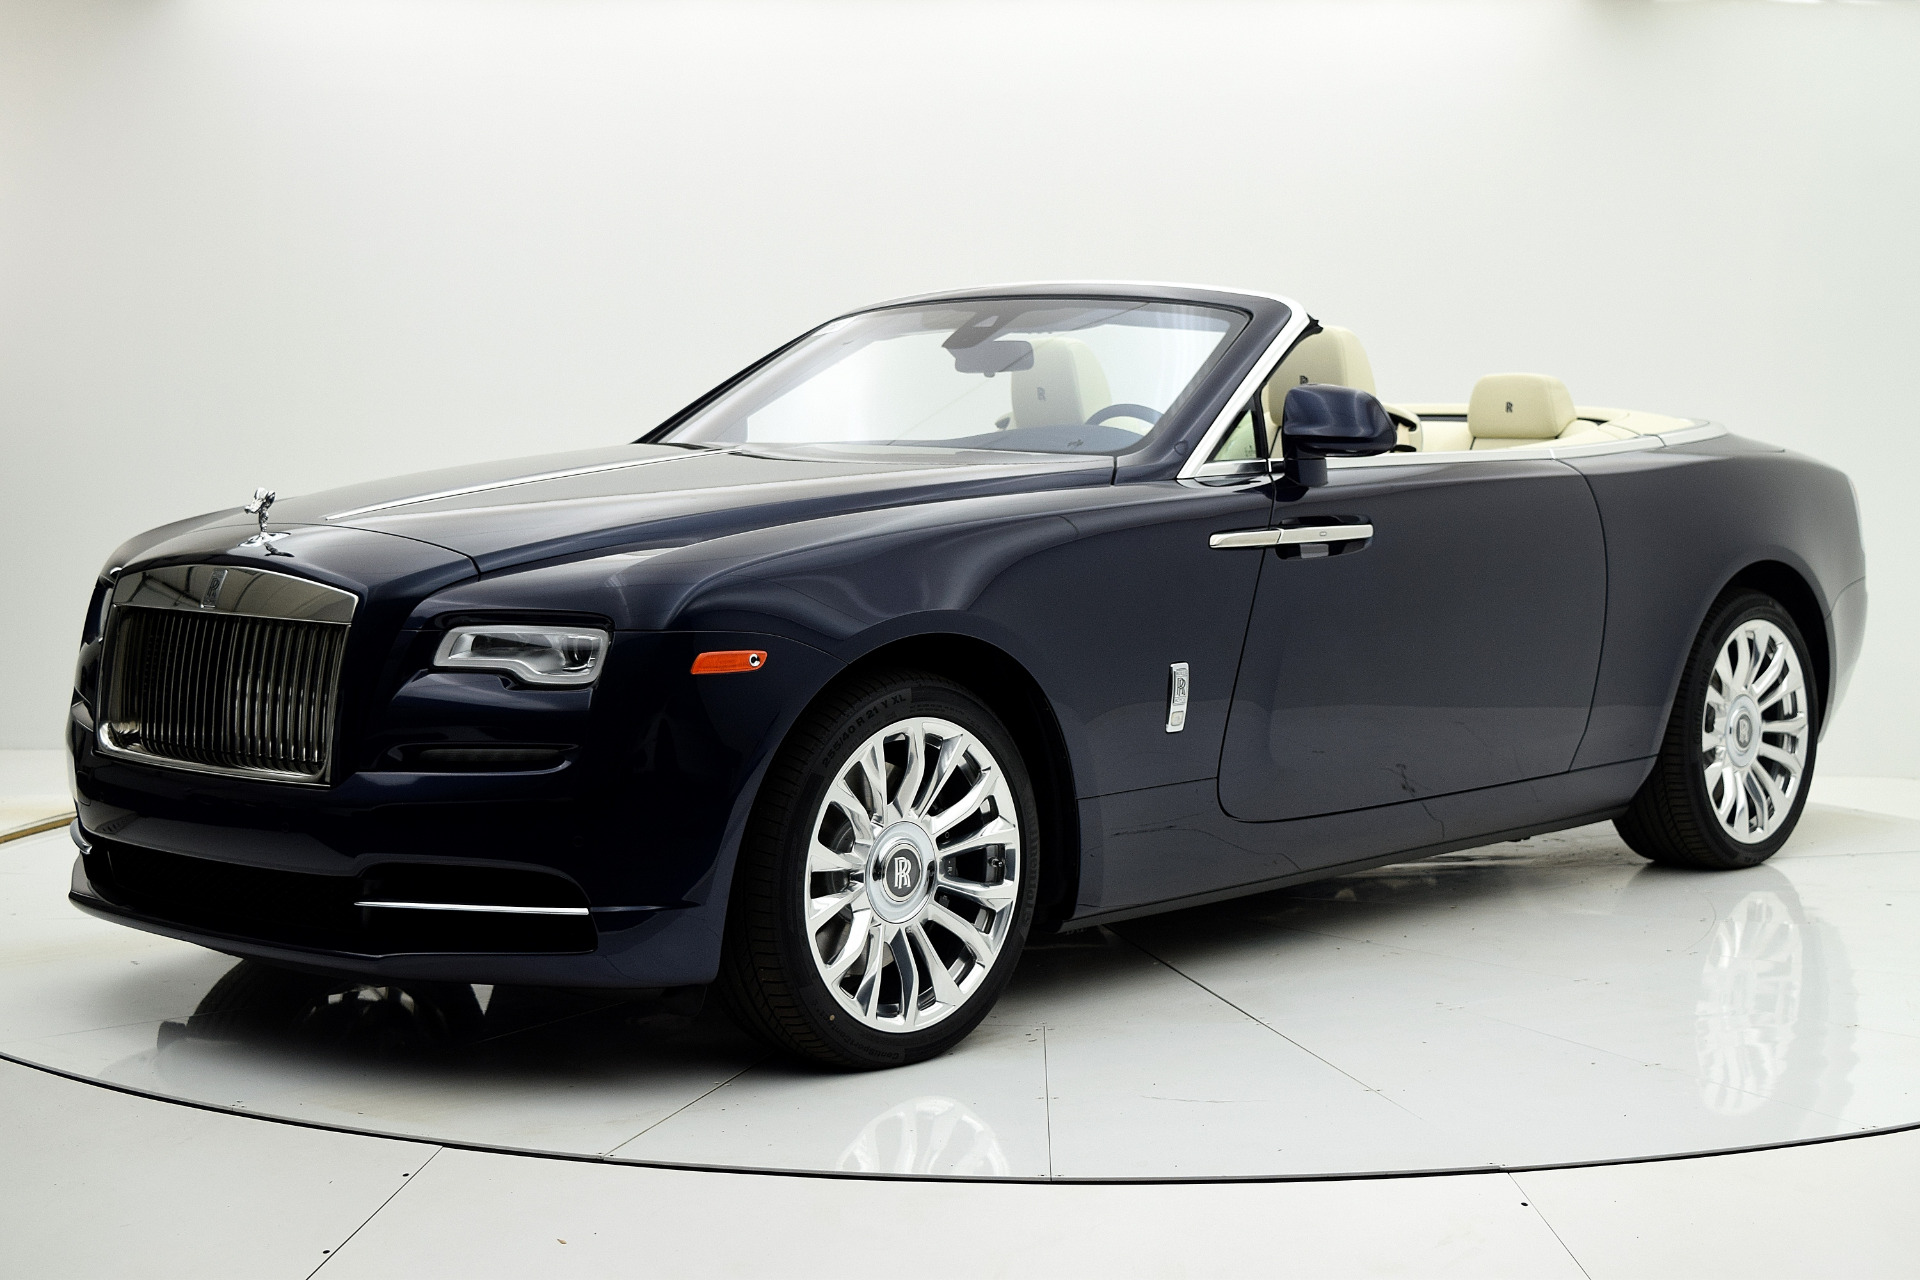 New 2019 Rolls-Royce Dawn for sale Sold at F.C. Kerbeck Aston Martin in Palmyra NJ 08065 2